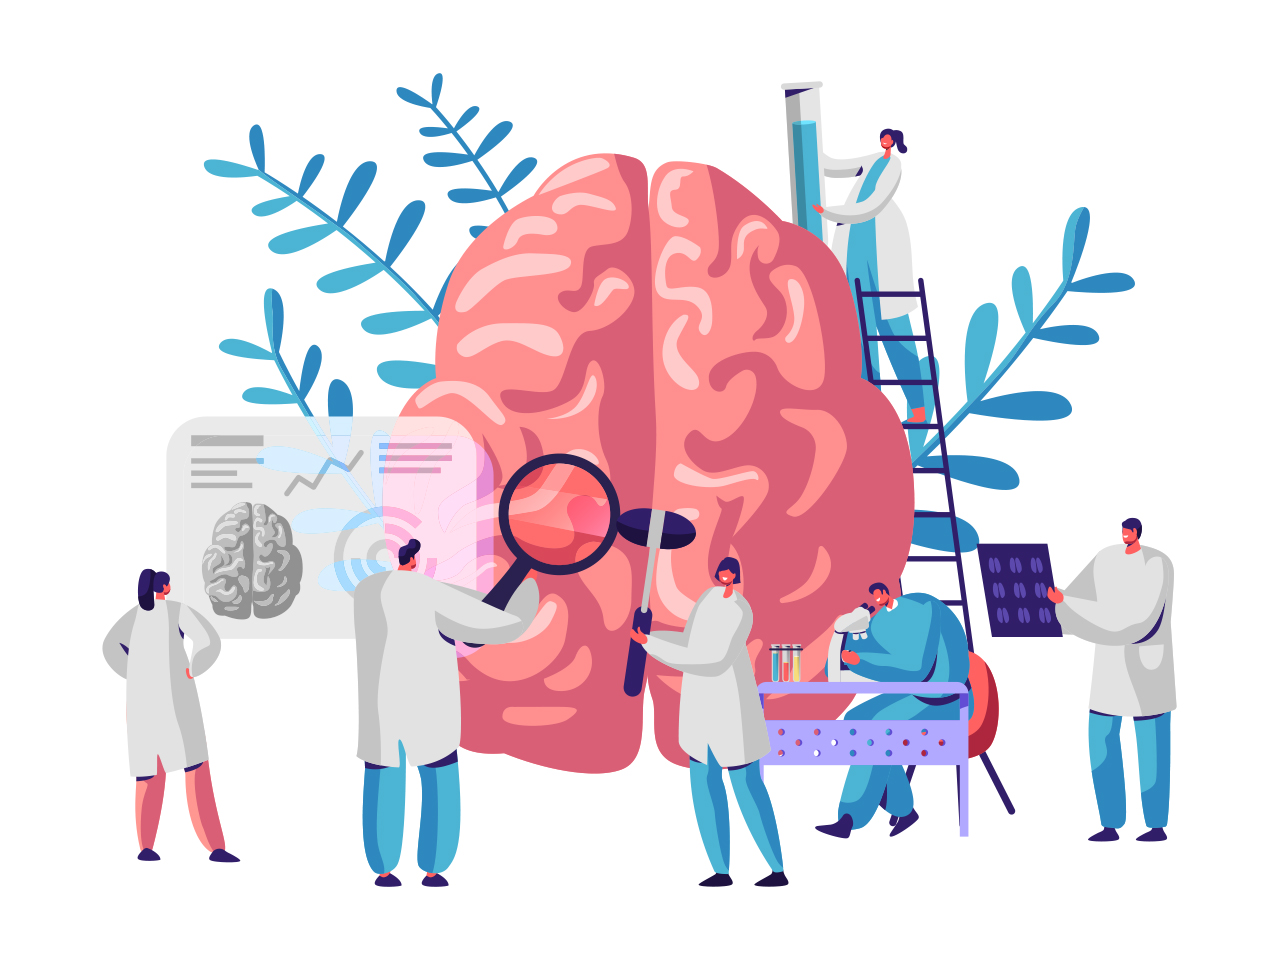 An illustration of a brain surrounded by white-coated scientists studying it